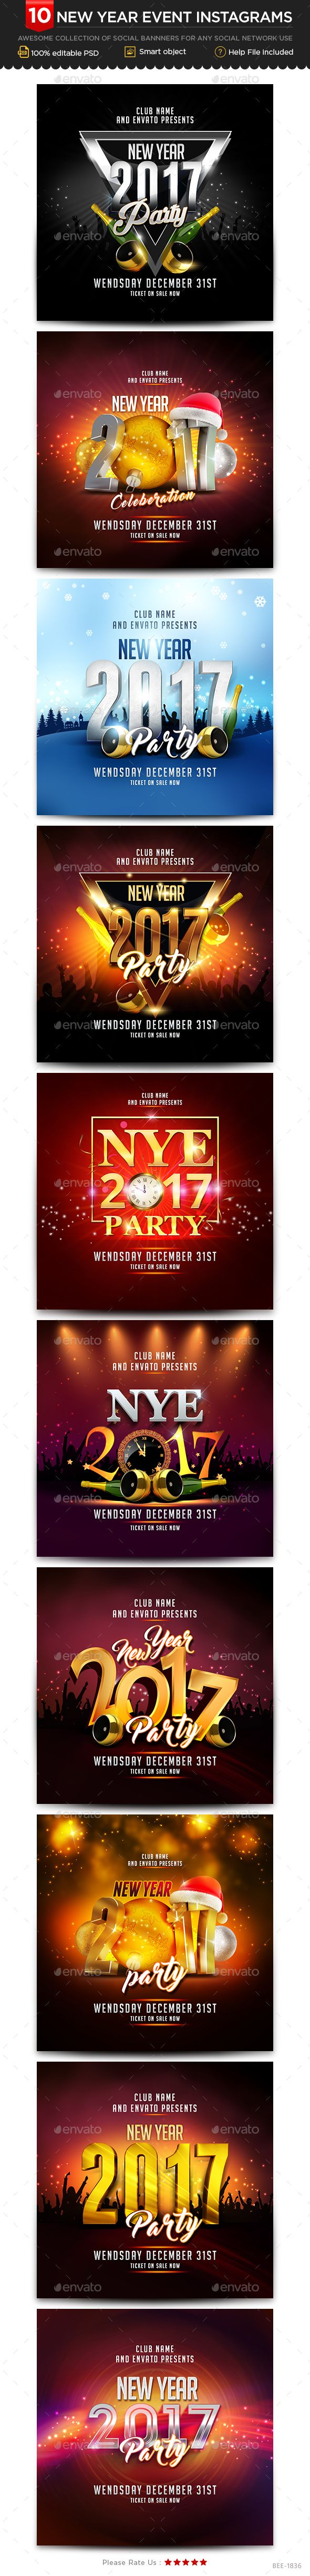 New Year Instagram Templates 10 Designs Images Included Instagram Template Instagram Banner Instagram